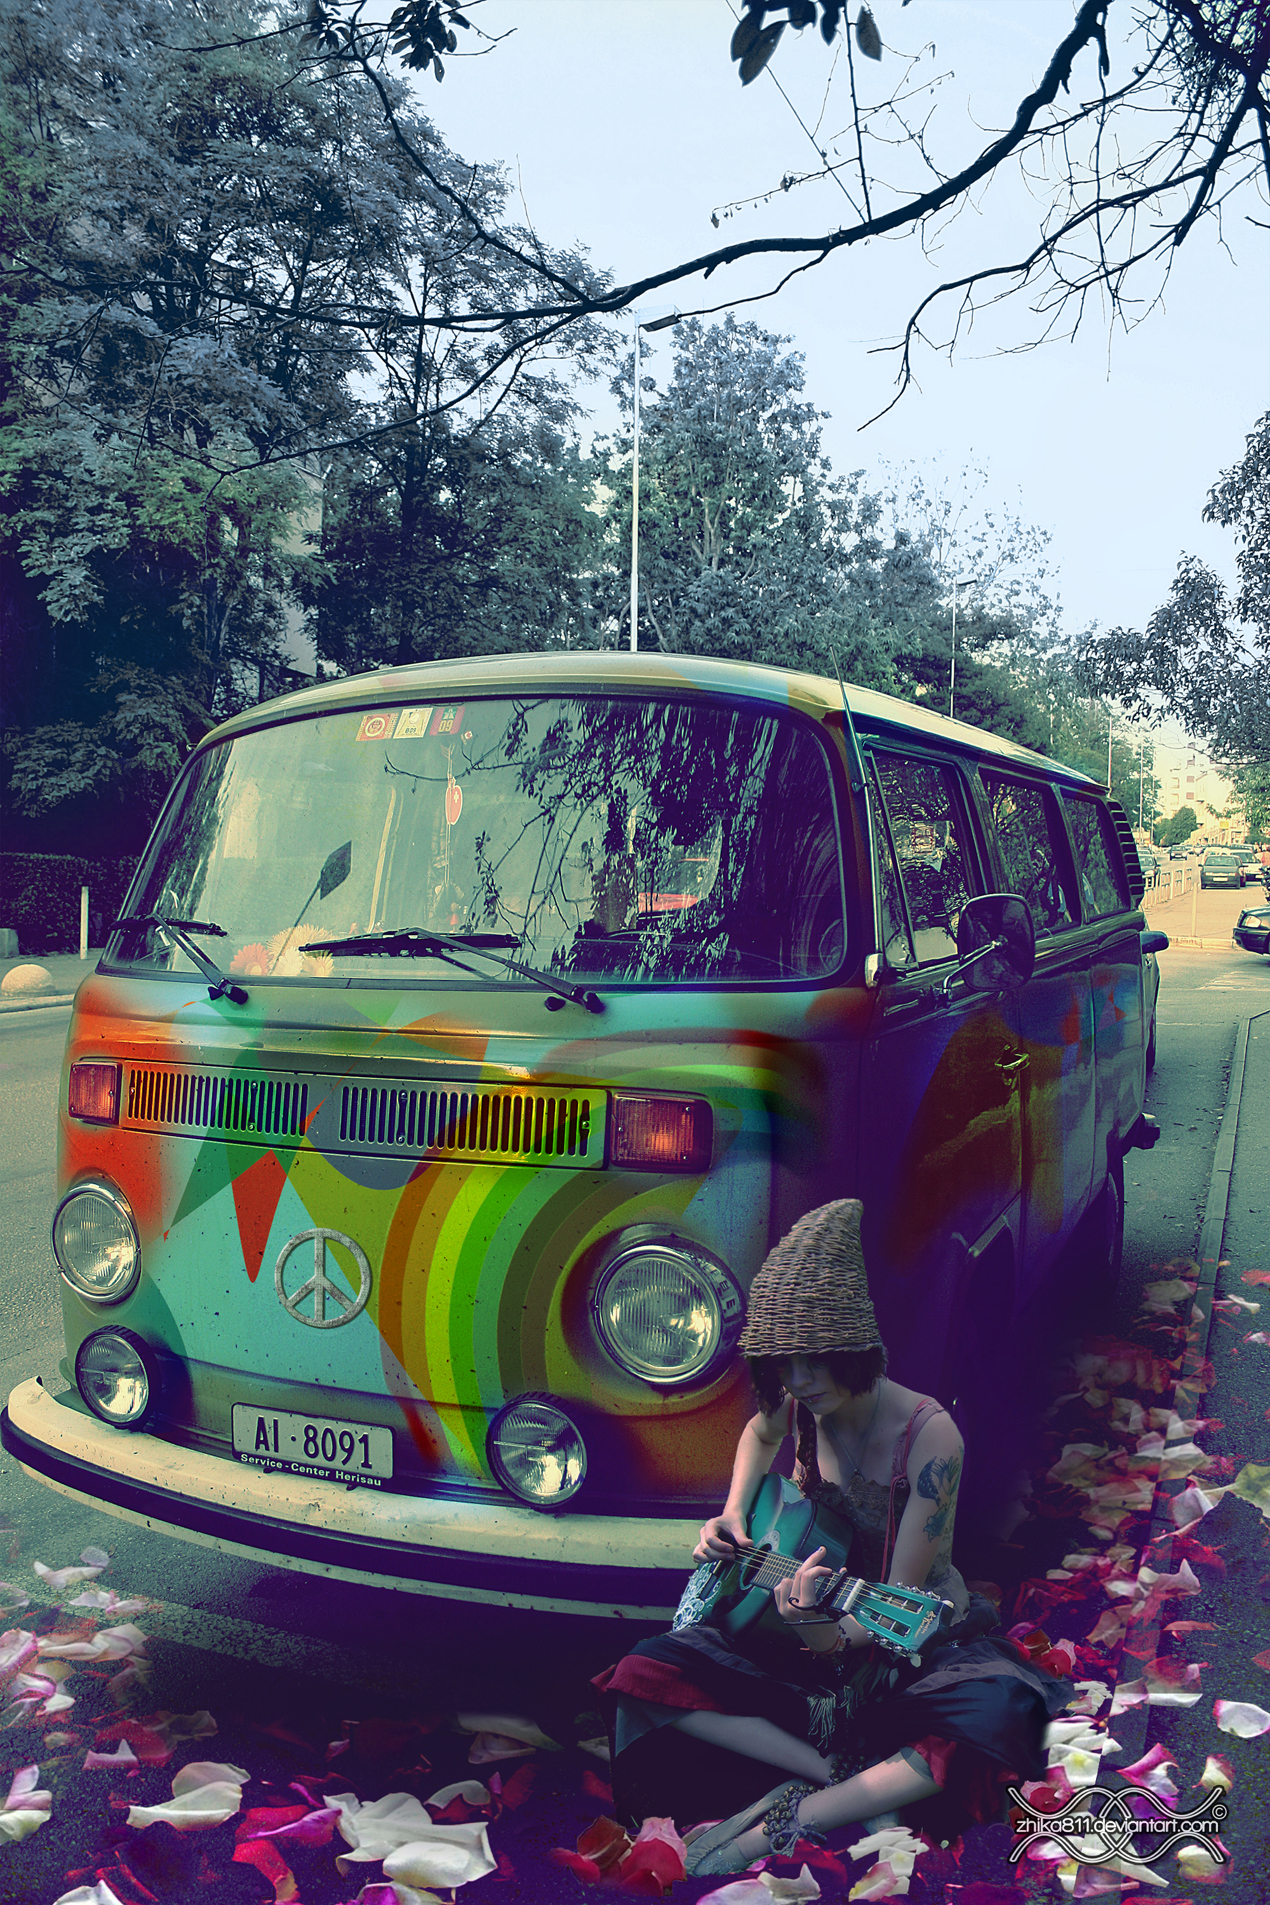 Vans iphone wallpaper tumblr - Hippy Van Wallpaper Picswallpaper Com